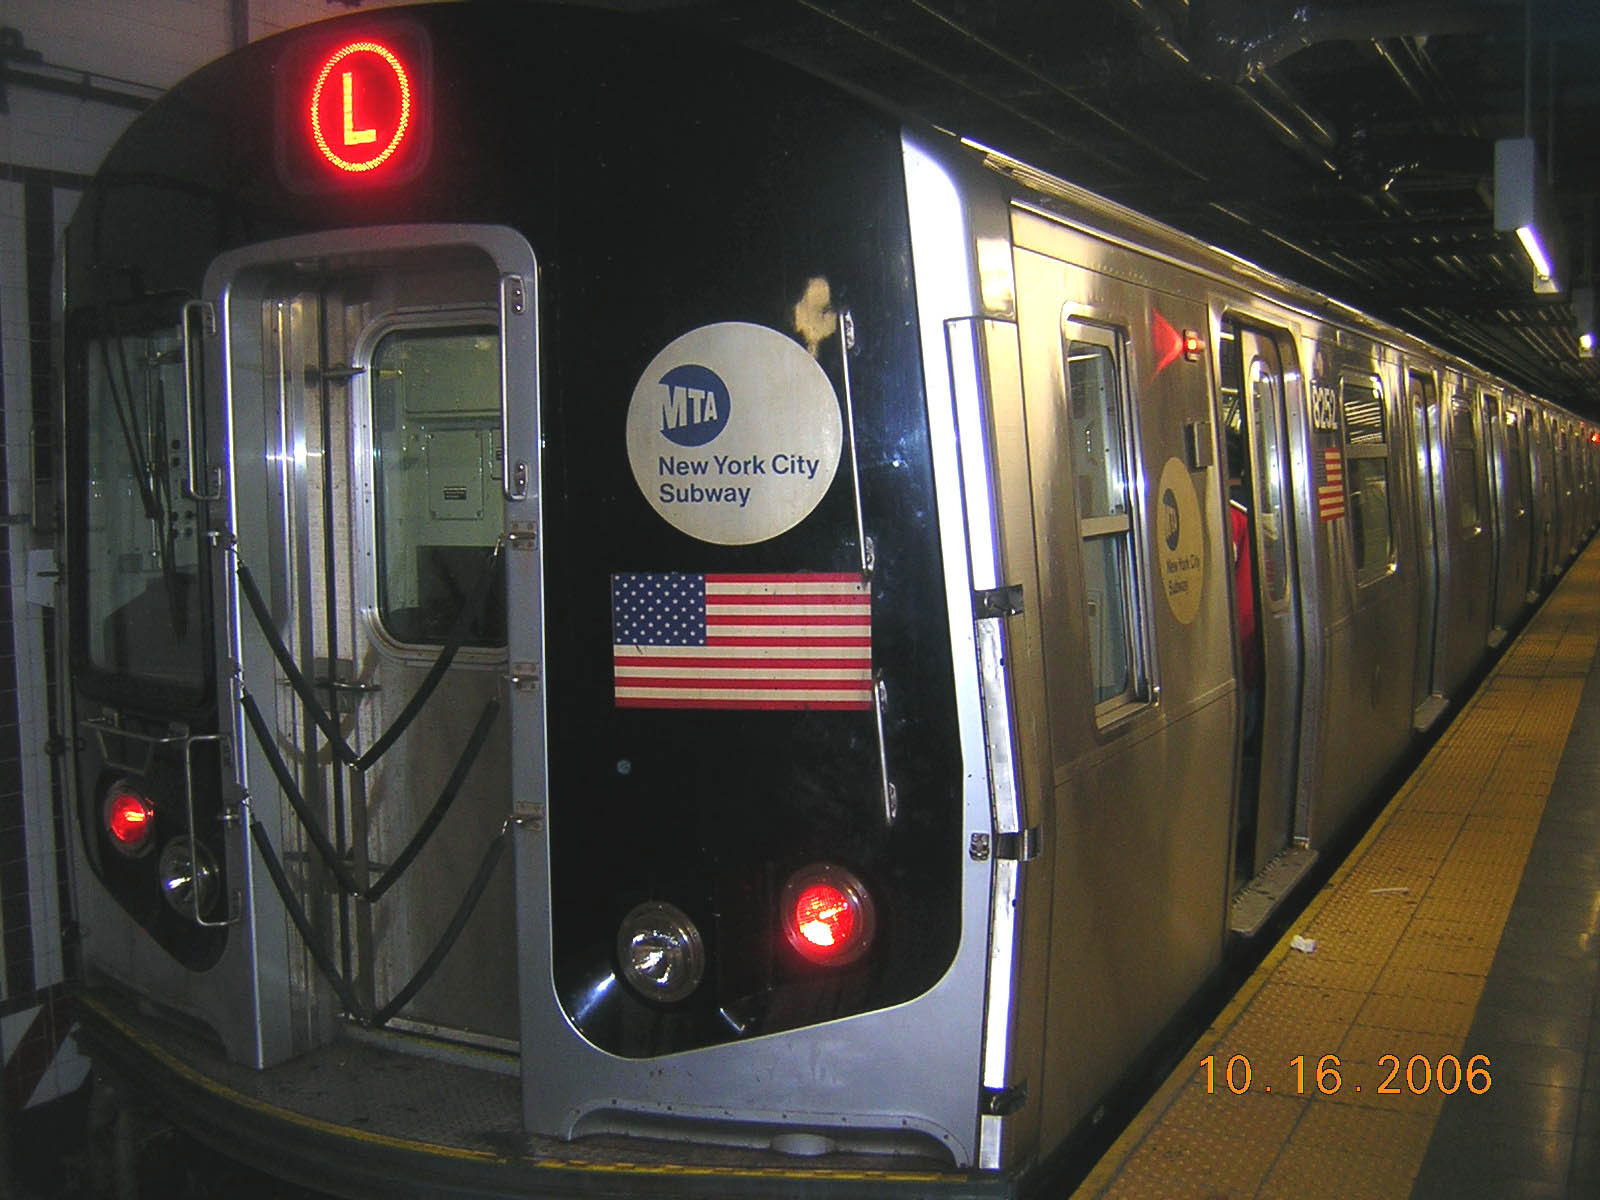 (223k, 1600x1200)<br><b>Country:</b> United States<br><b>City:</b> New York<br><b>System:</b> New York City Transit<br><b>Line:</b> BMT Canarsie Line<br><b>Location:</b> 8th Avenue <br><b>Route:</b> L<br><b>Car:</b> R-143 (Kawasaki, 2001-2002) 8252 <br><b>Photo by:</b> Robert Mencher<br><b>Date:</b> 10/16/2006<br><b>Viewed (this week/total):</b> 1 / 1683